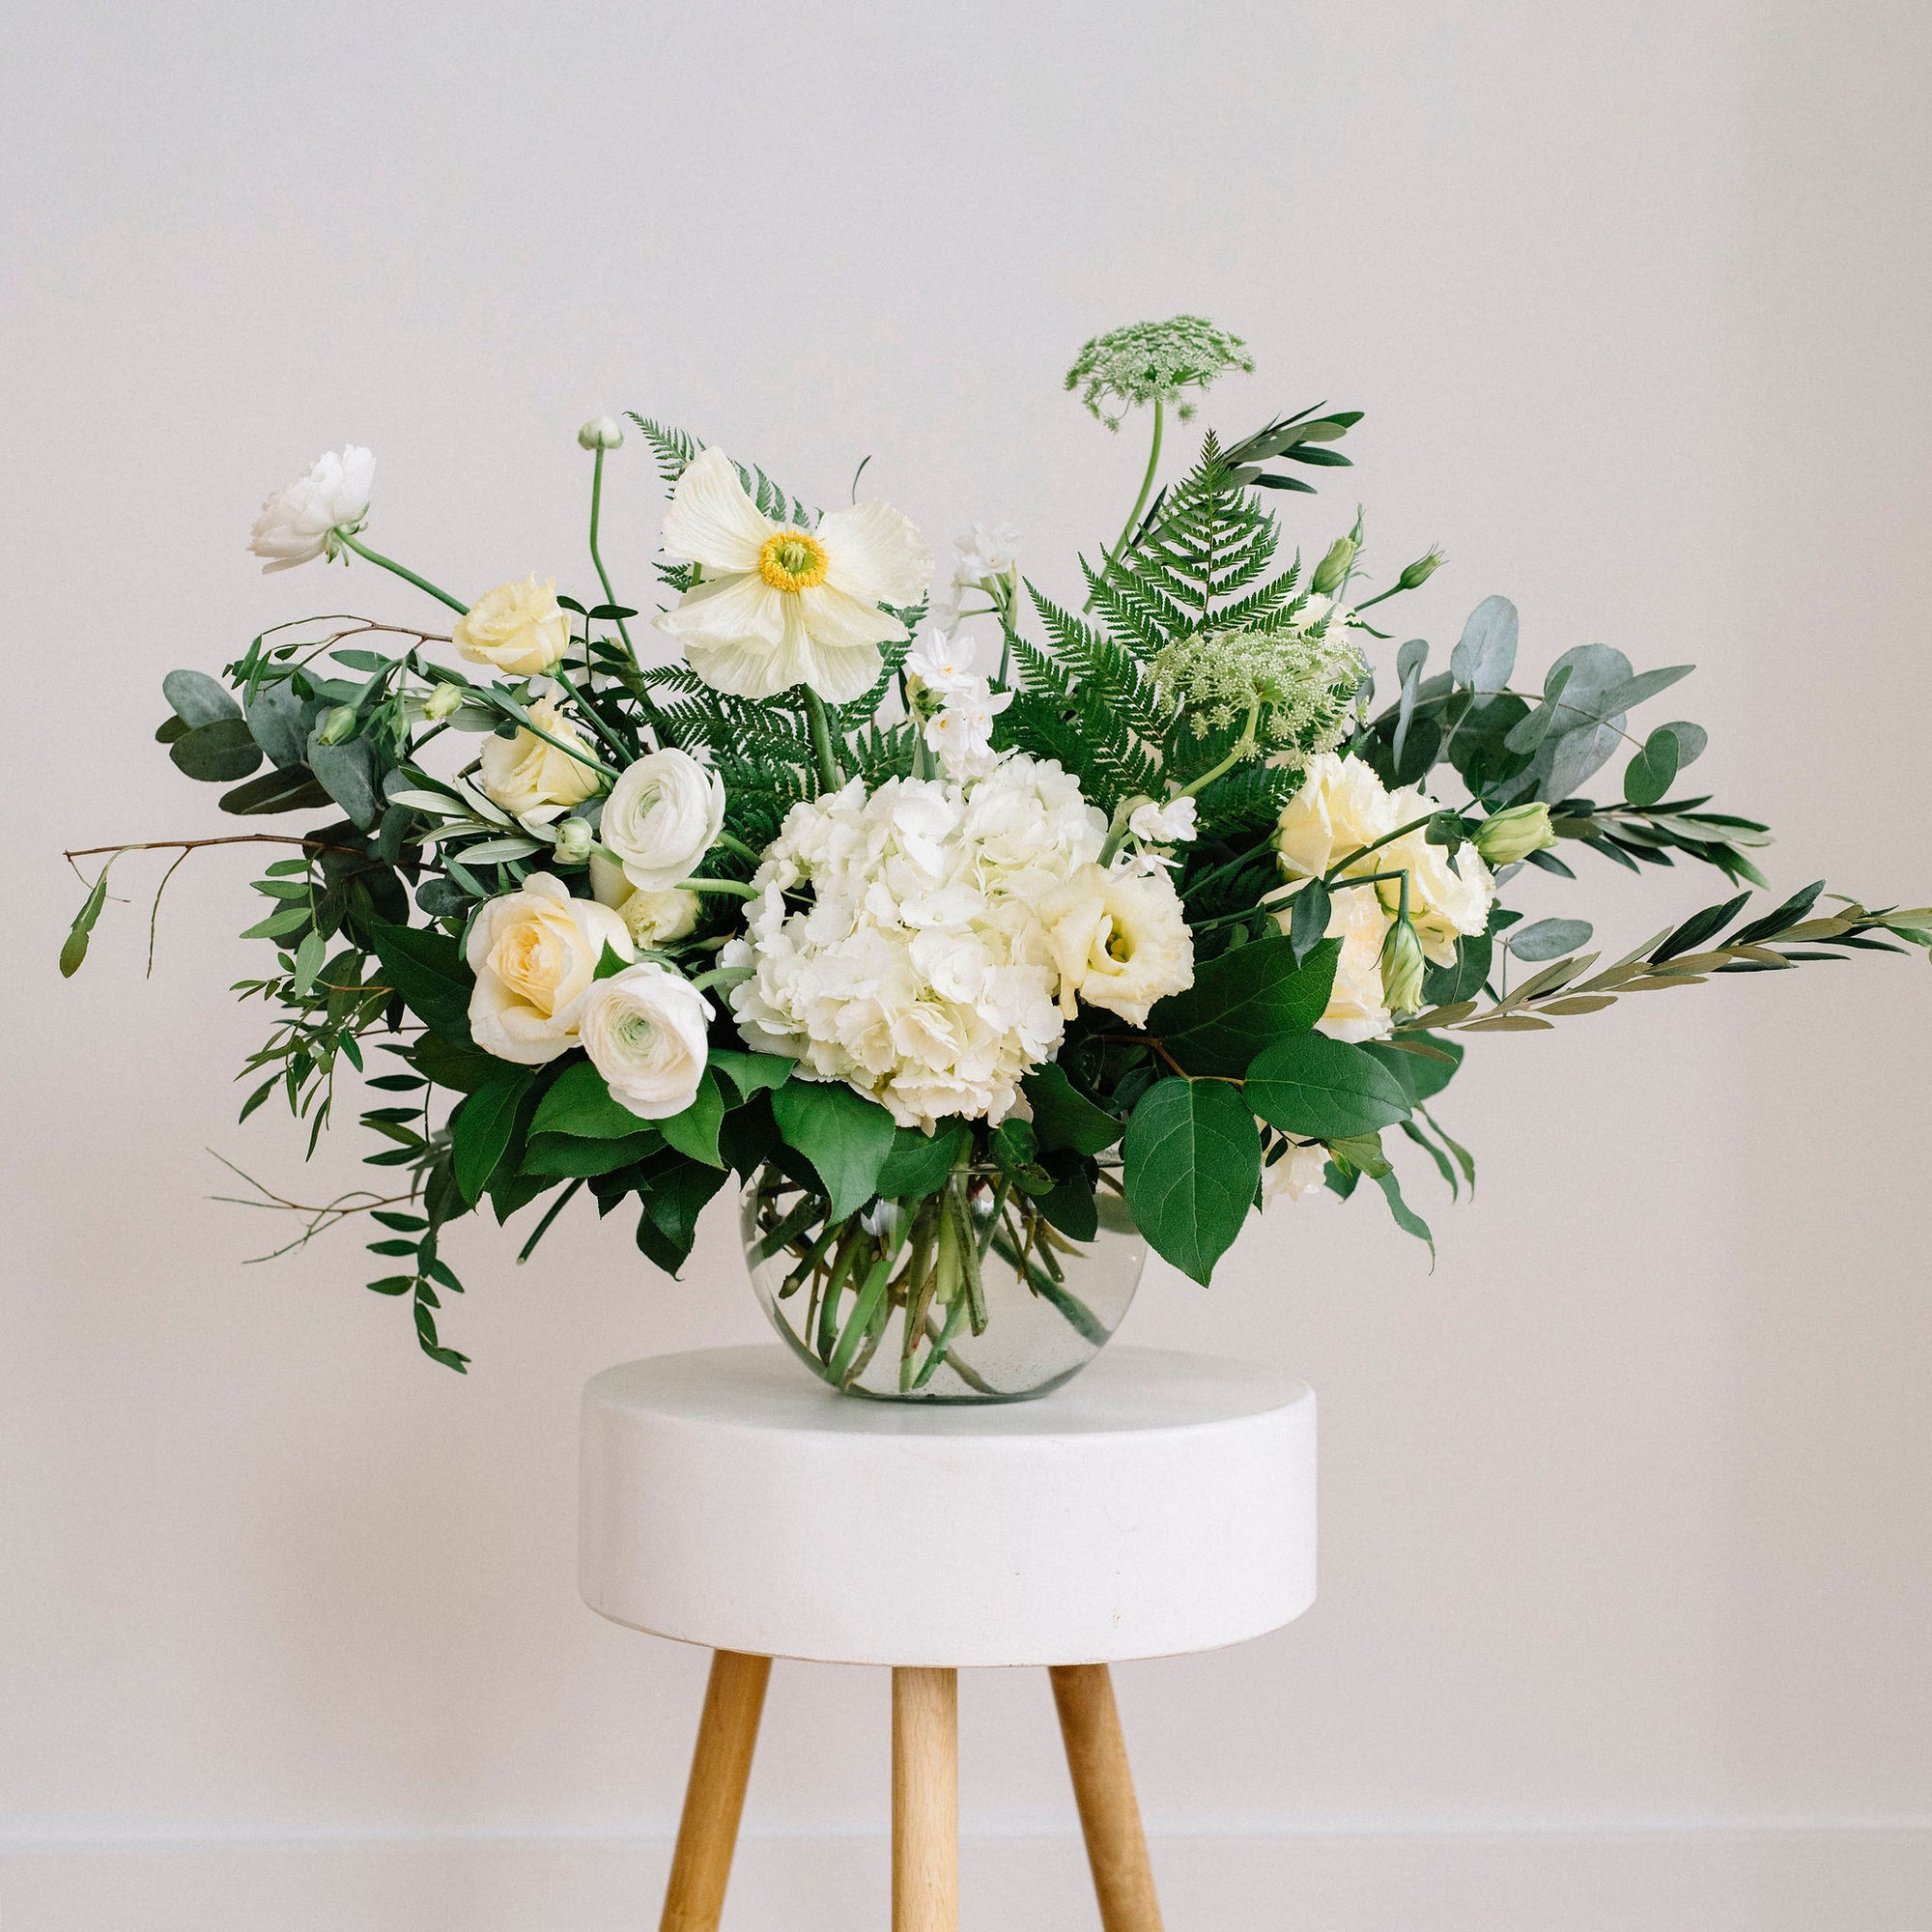 The Bright Light Vase Arrangement